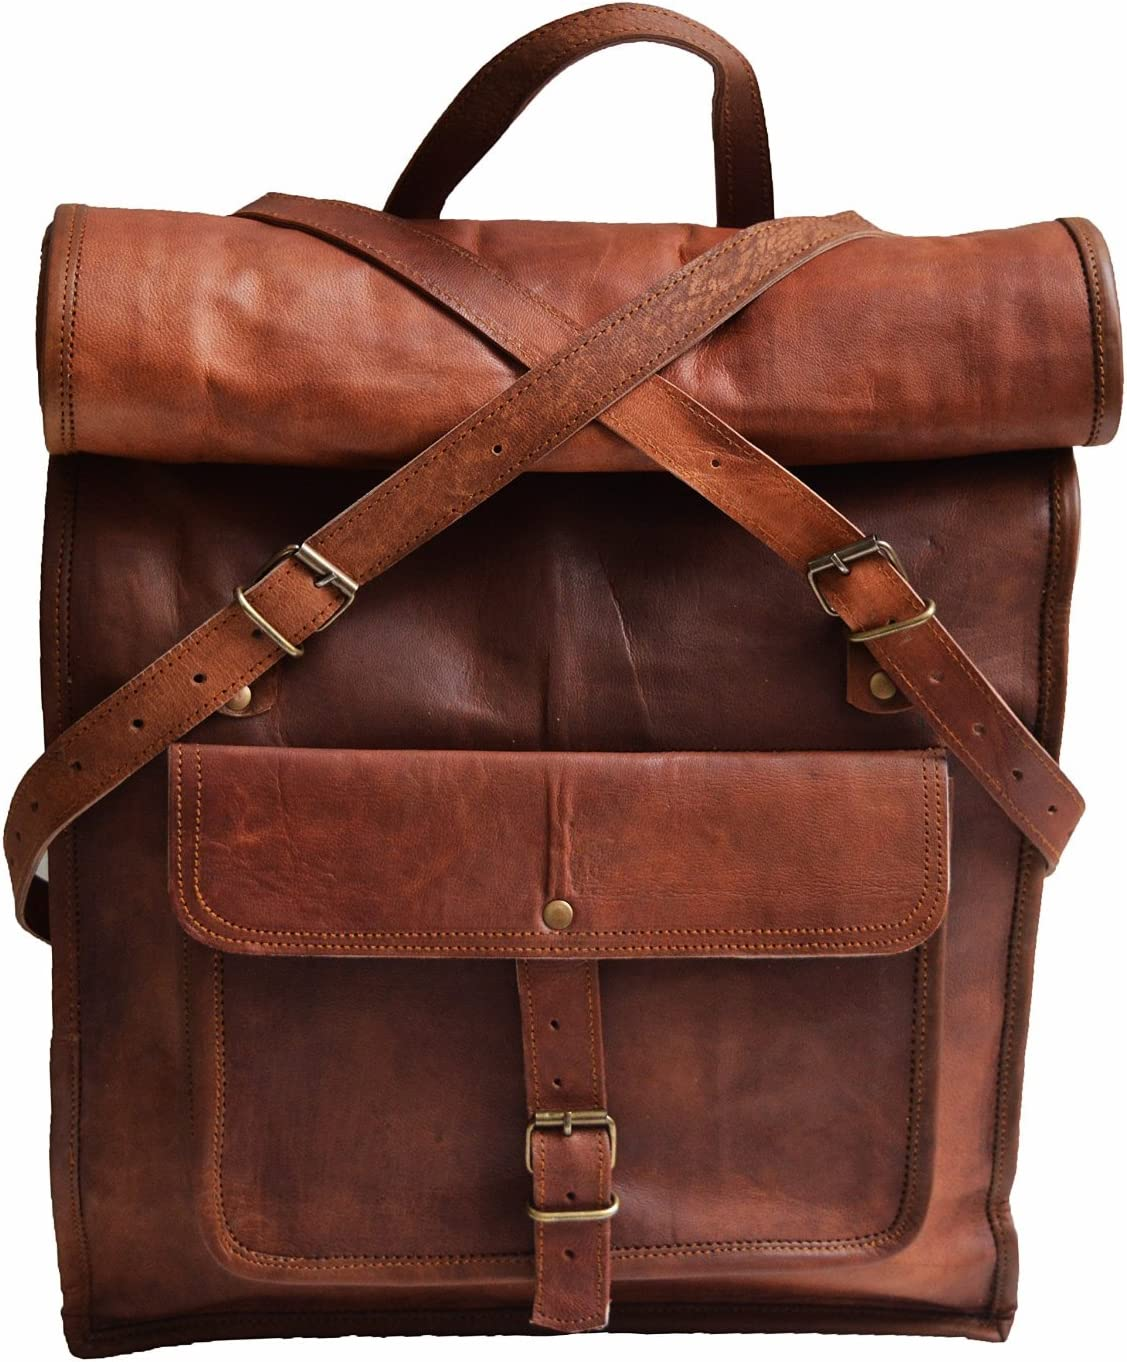 Vintage Men/'s Leather Backpack Bags Shoulder Briefcase Rucksack Laptop Bag